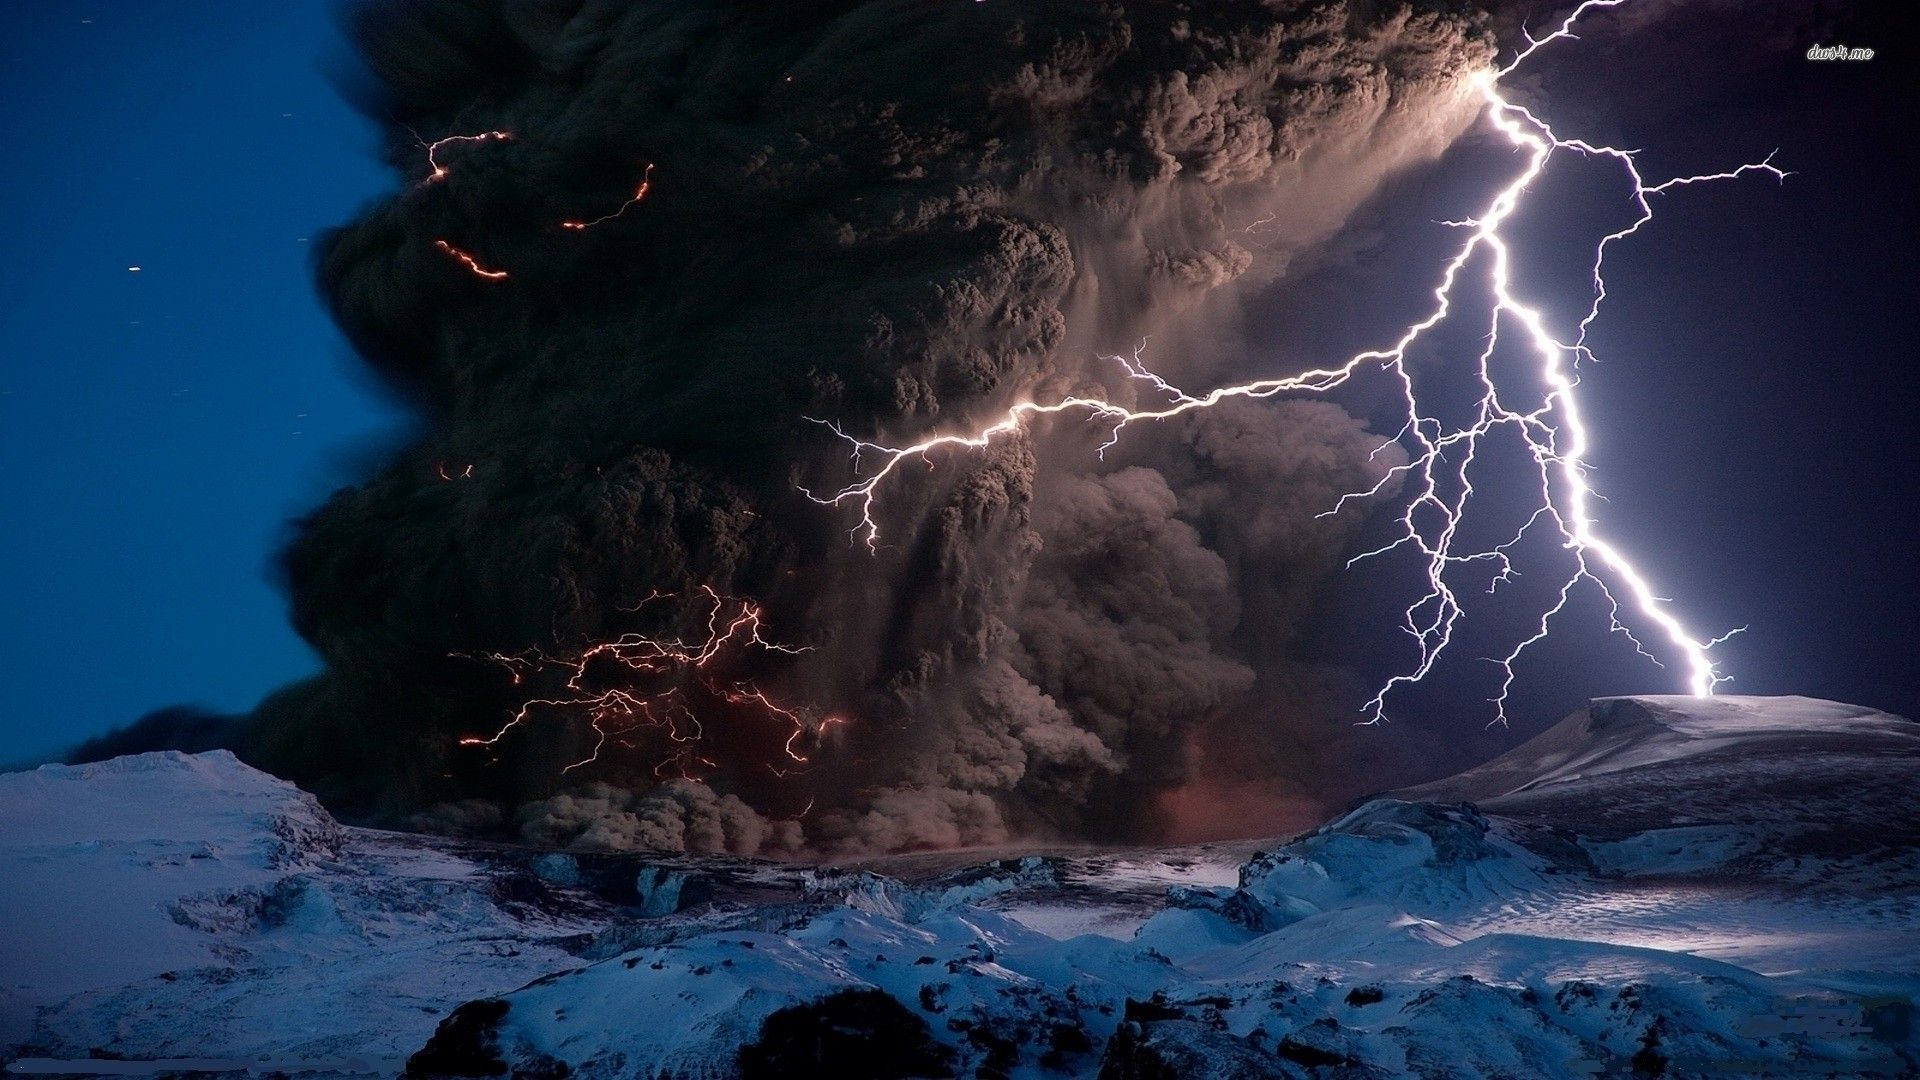 Lightning & Apocalyptic storm over the volcano | Beauty Of Lightning ... azcodes.com